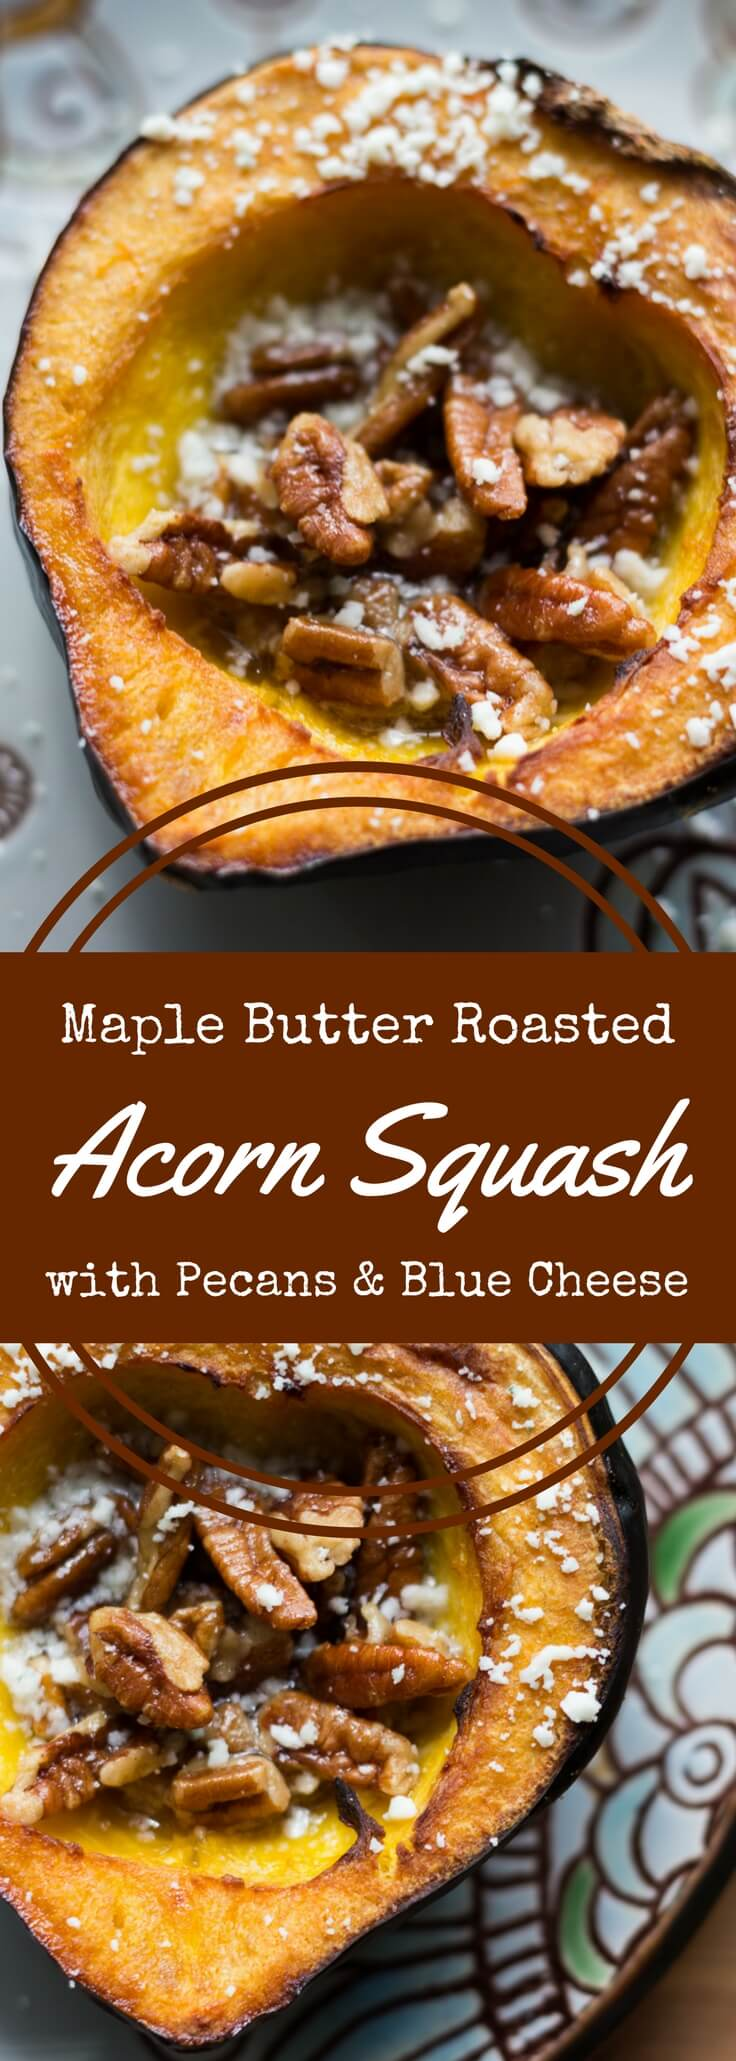 Rich, sweet roasted acorn squash doused in maple butter and filled with maple butter roasted pecans, then topped with blue cheese crumbles.